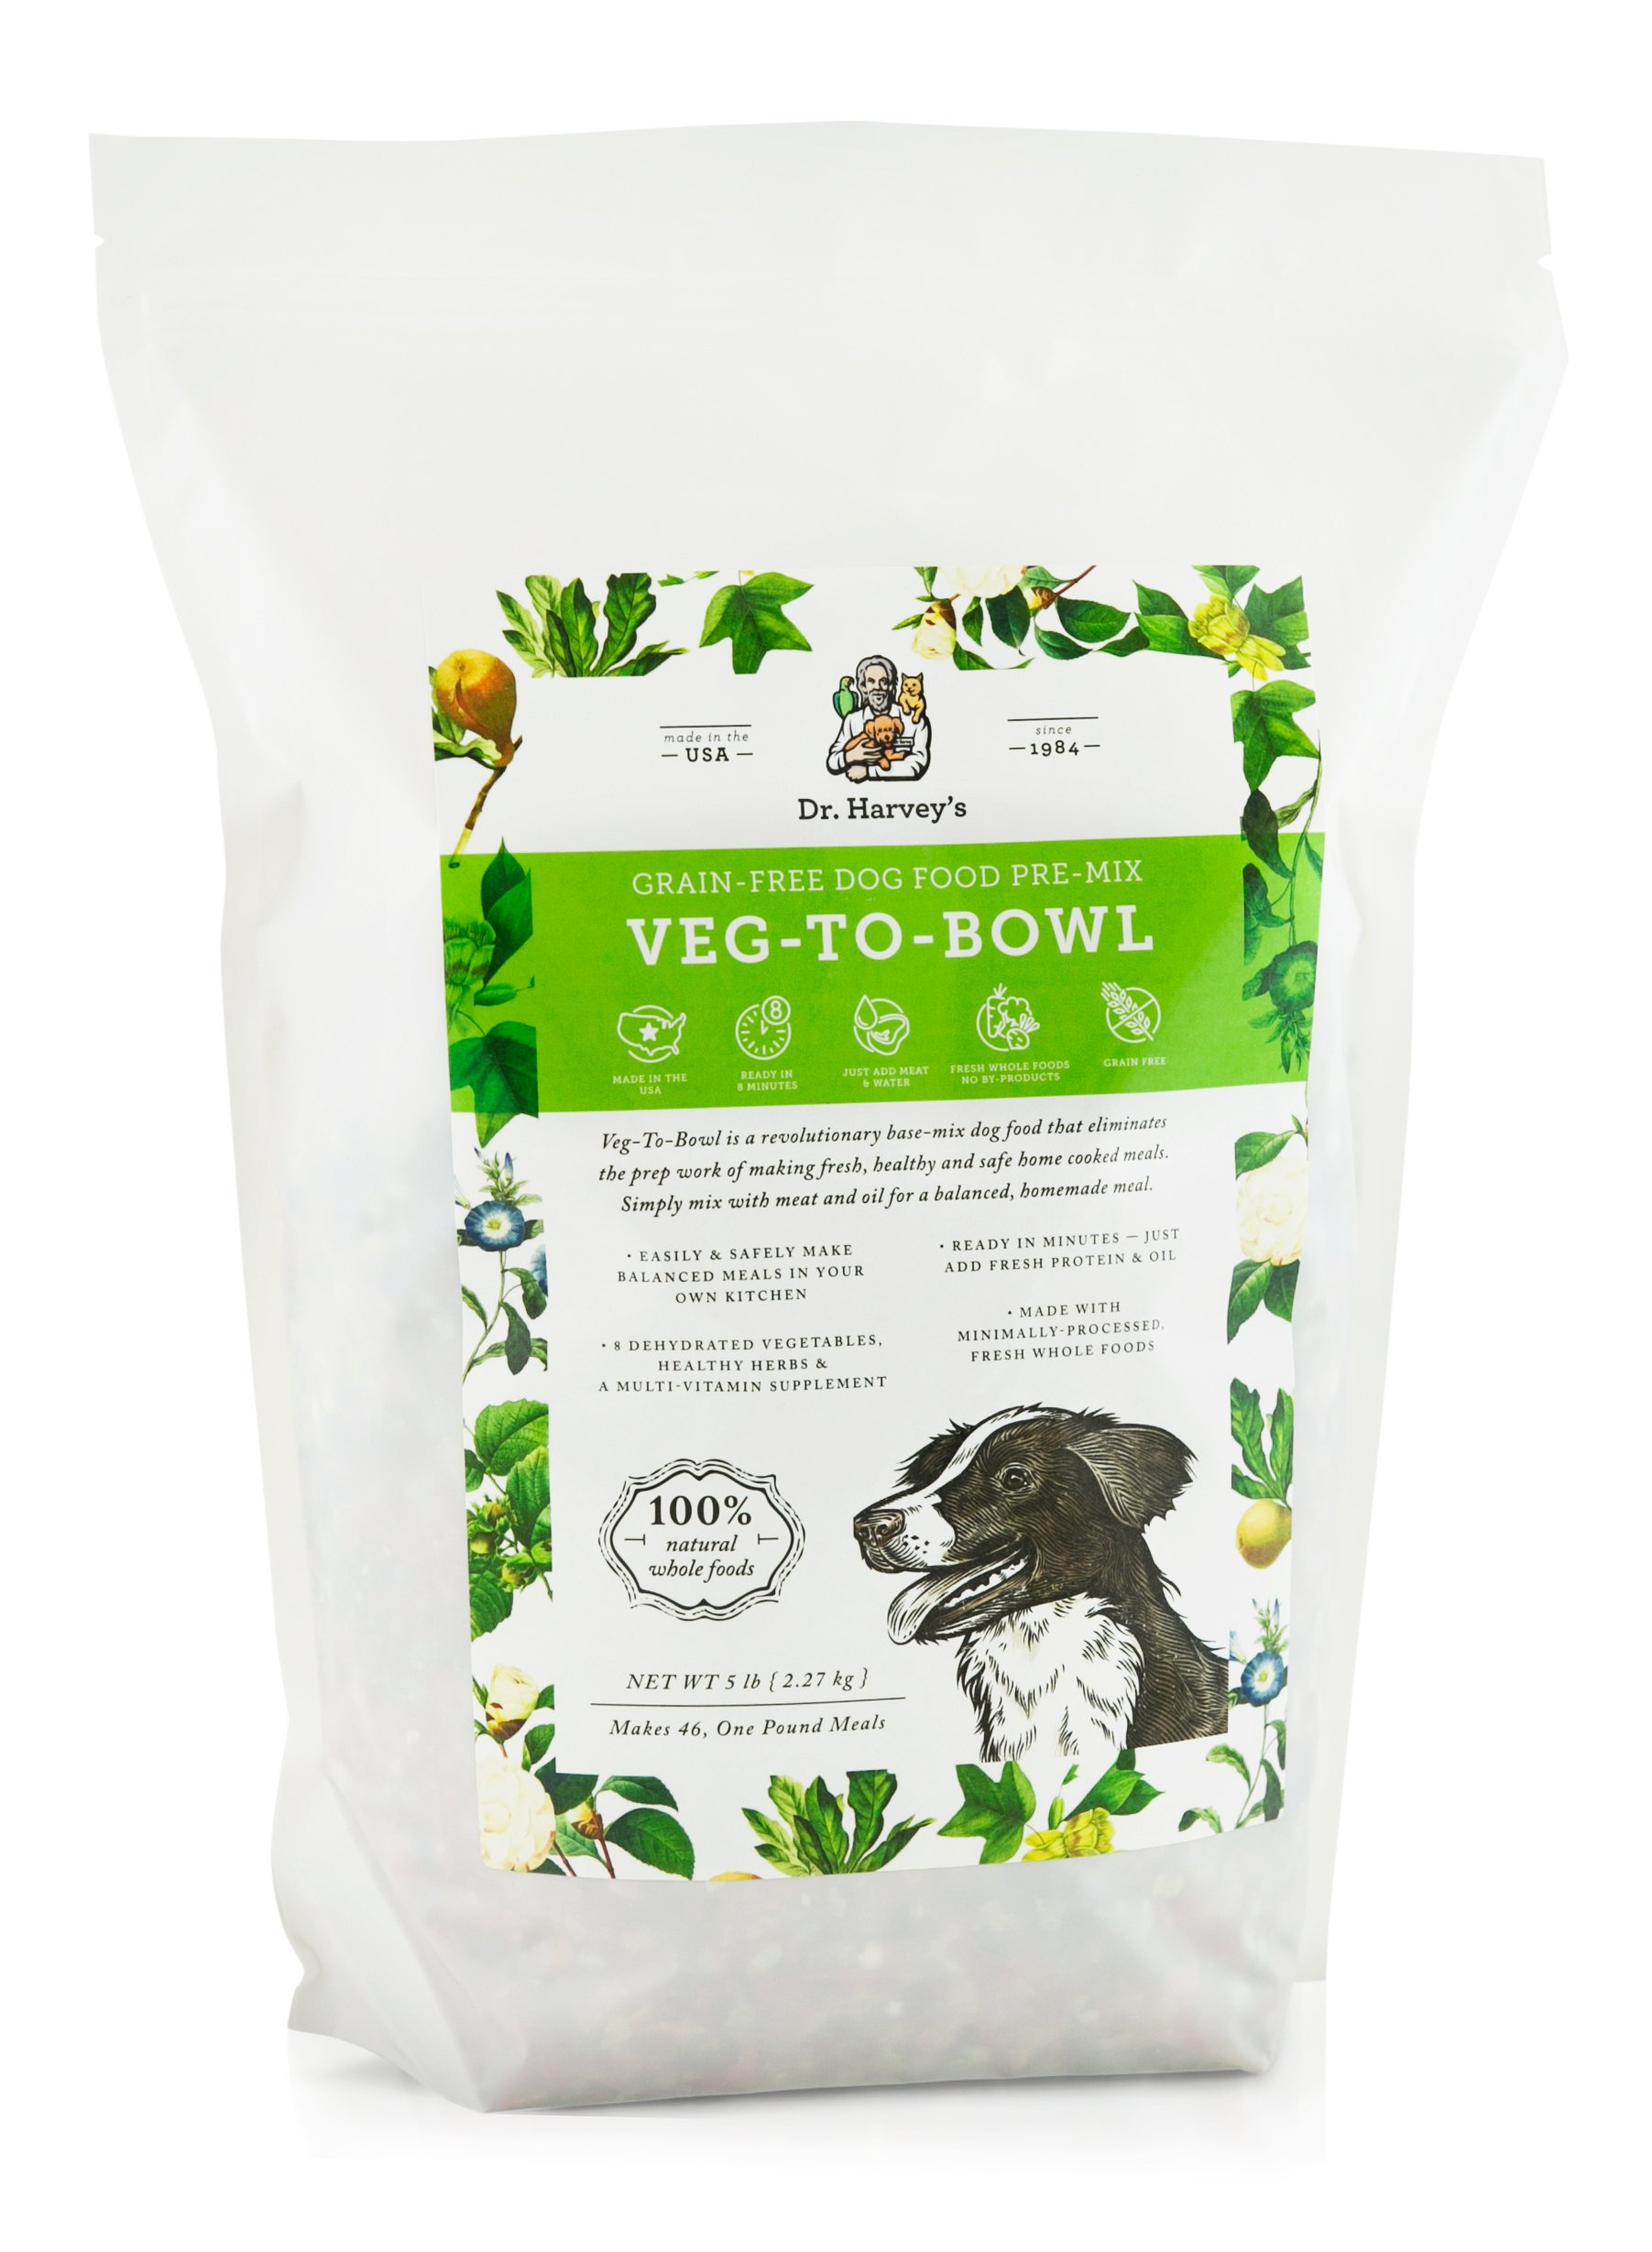 Dr. Harvey's Veg-to-Bowl Dog Food, Human Grade Dehydrated Base Mix for Dogs, Grain Free Holistic Mix (5 Pounds) by Dr. Harvey's